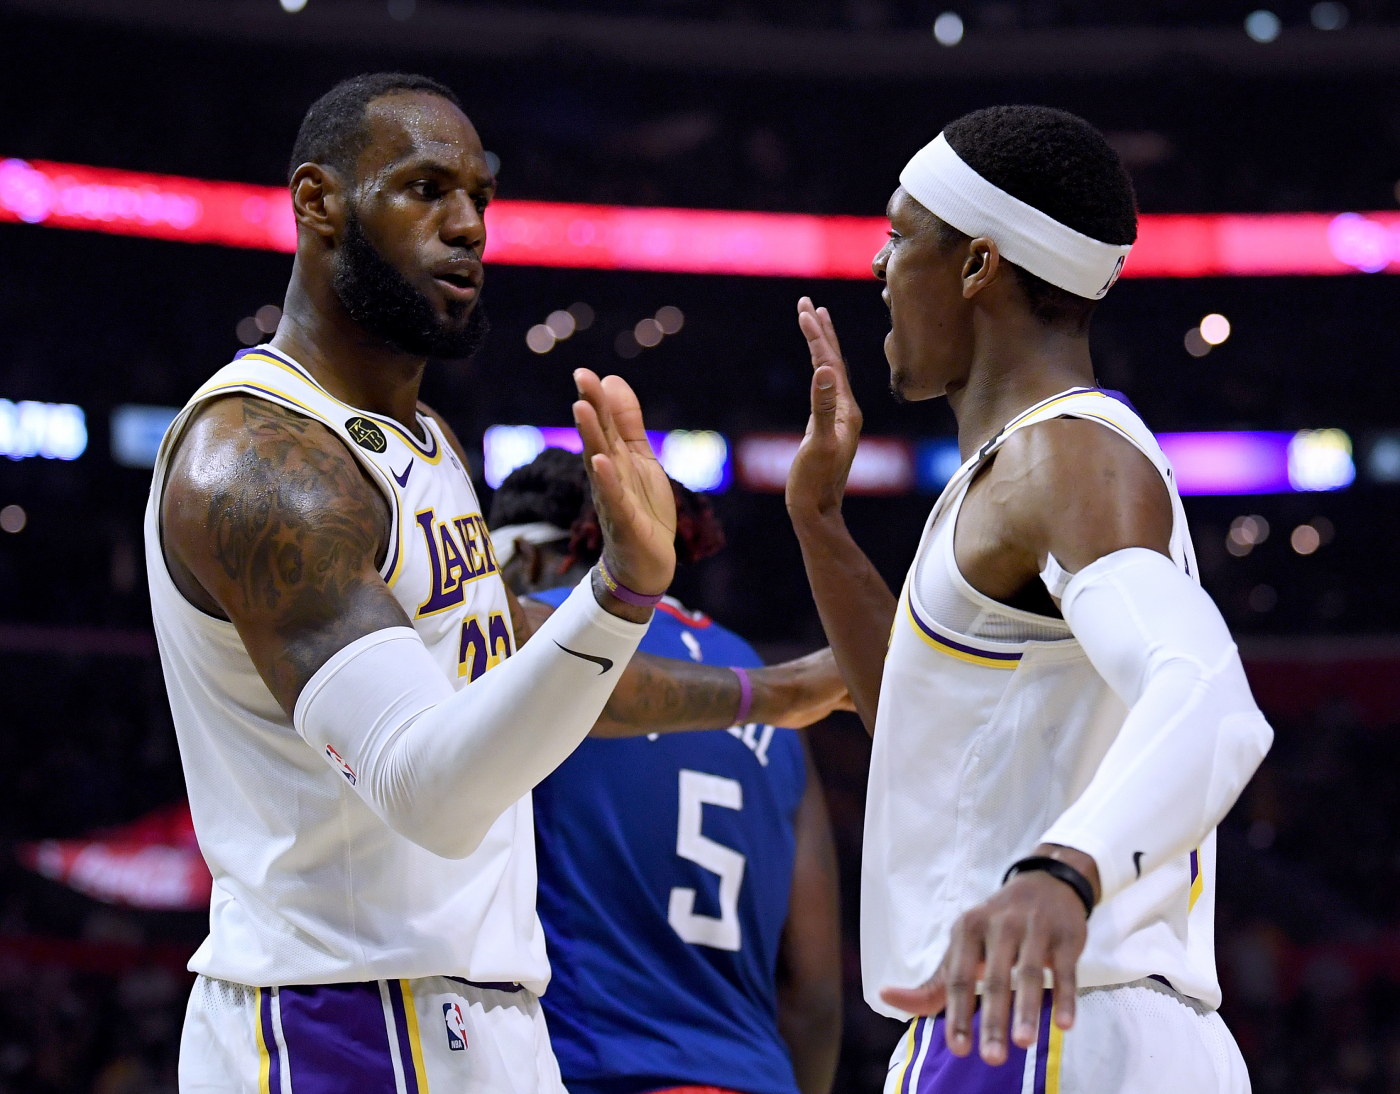 Rajon Rondo has proven to be an extremely valuable piece for the Lakers. He even proved it once by confronting LeBron James.